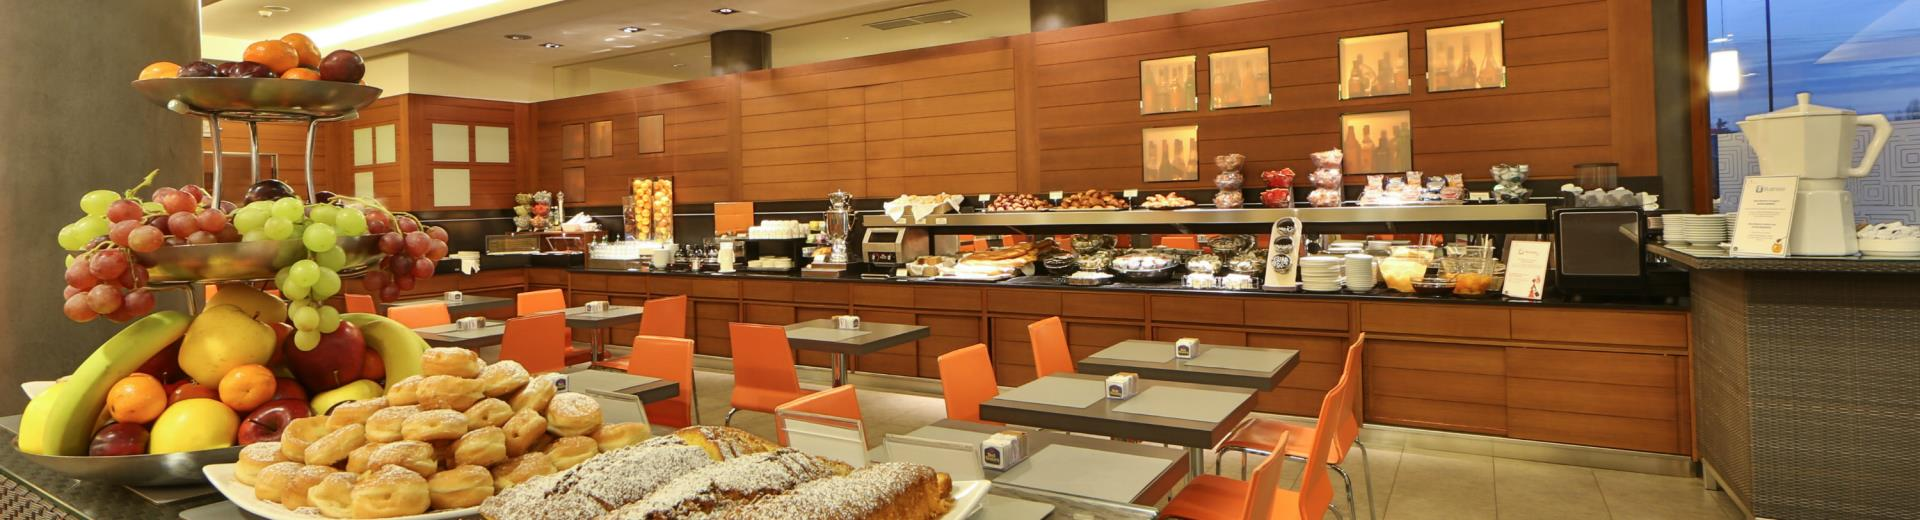 Breakfast buffet every morning from 7.00 hours to 10.30 hours.